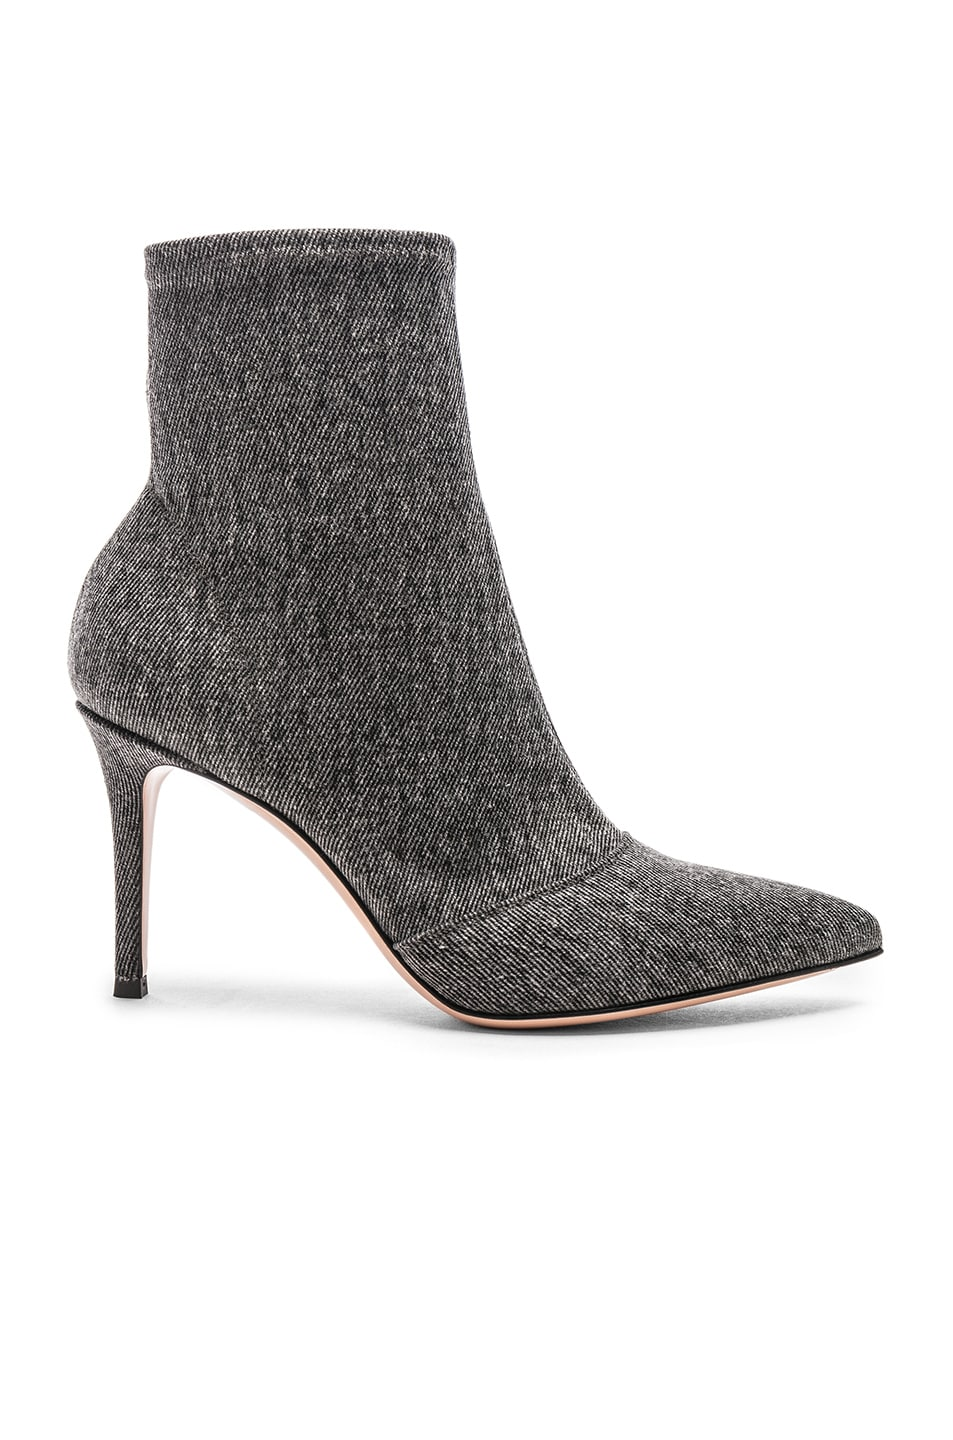 Image 1 of Gianvito Rossi Denim Stretch Ankle Booties in Black